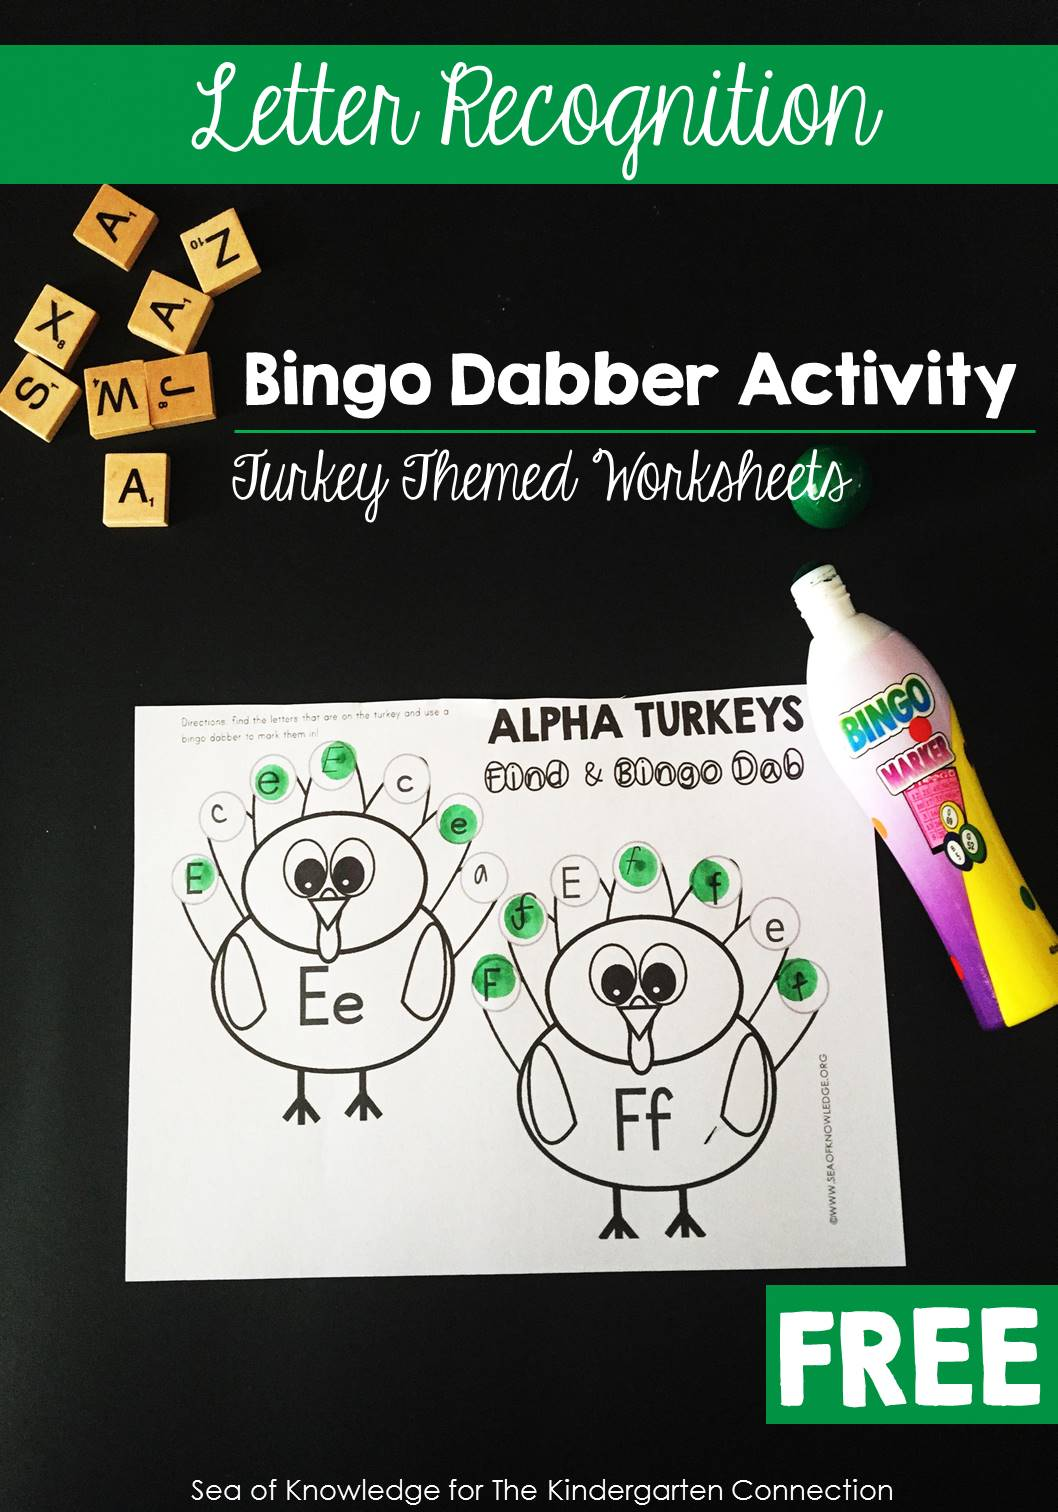 Build letter recognition skills while having tons of fun with this free printable turkey letter recognition activity! Perfect for fall or thanksgiving.